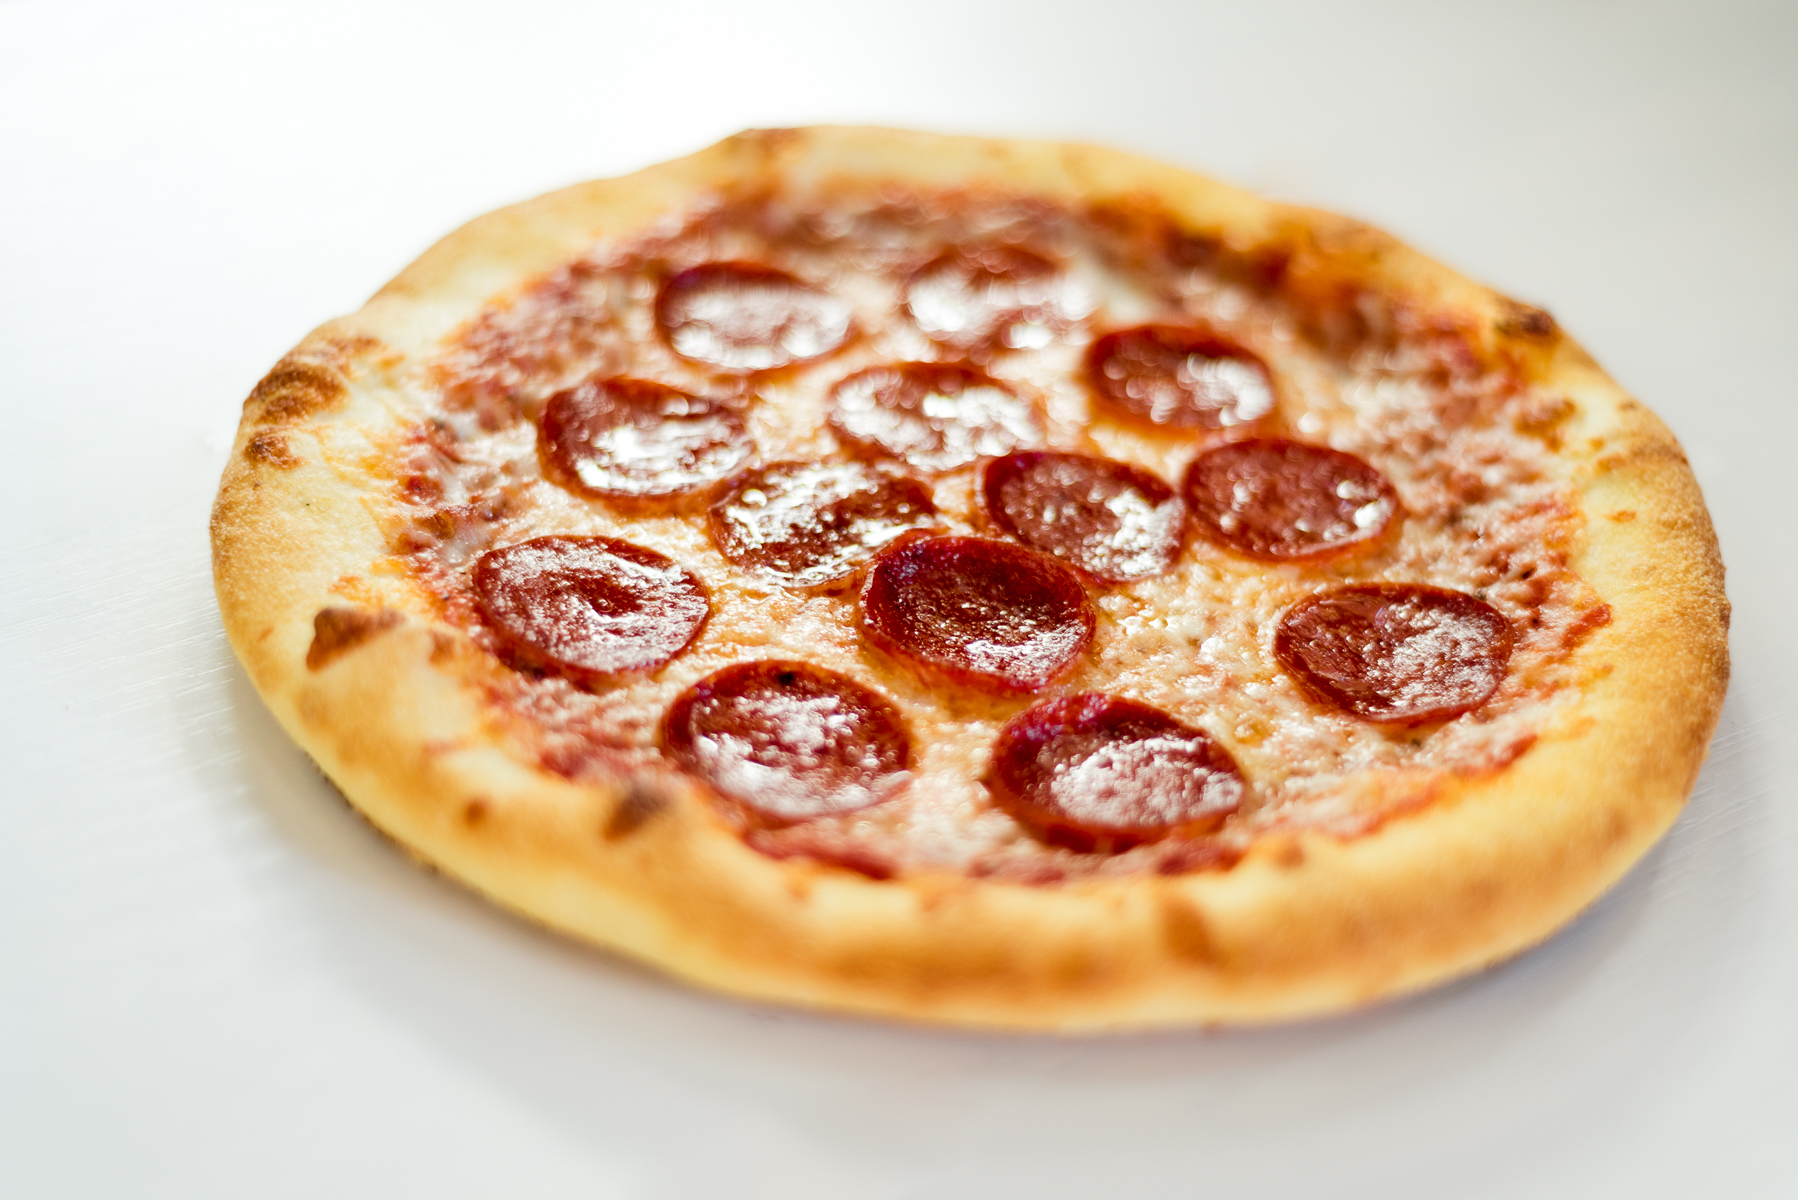 Pepperoni Pizza from Mici Handcrafted Italian in Denver, CO.